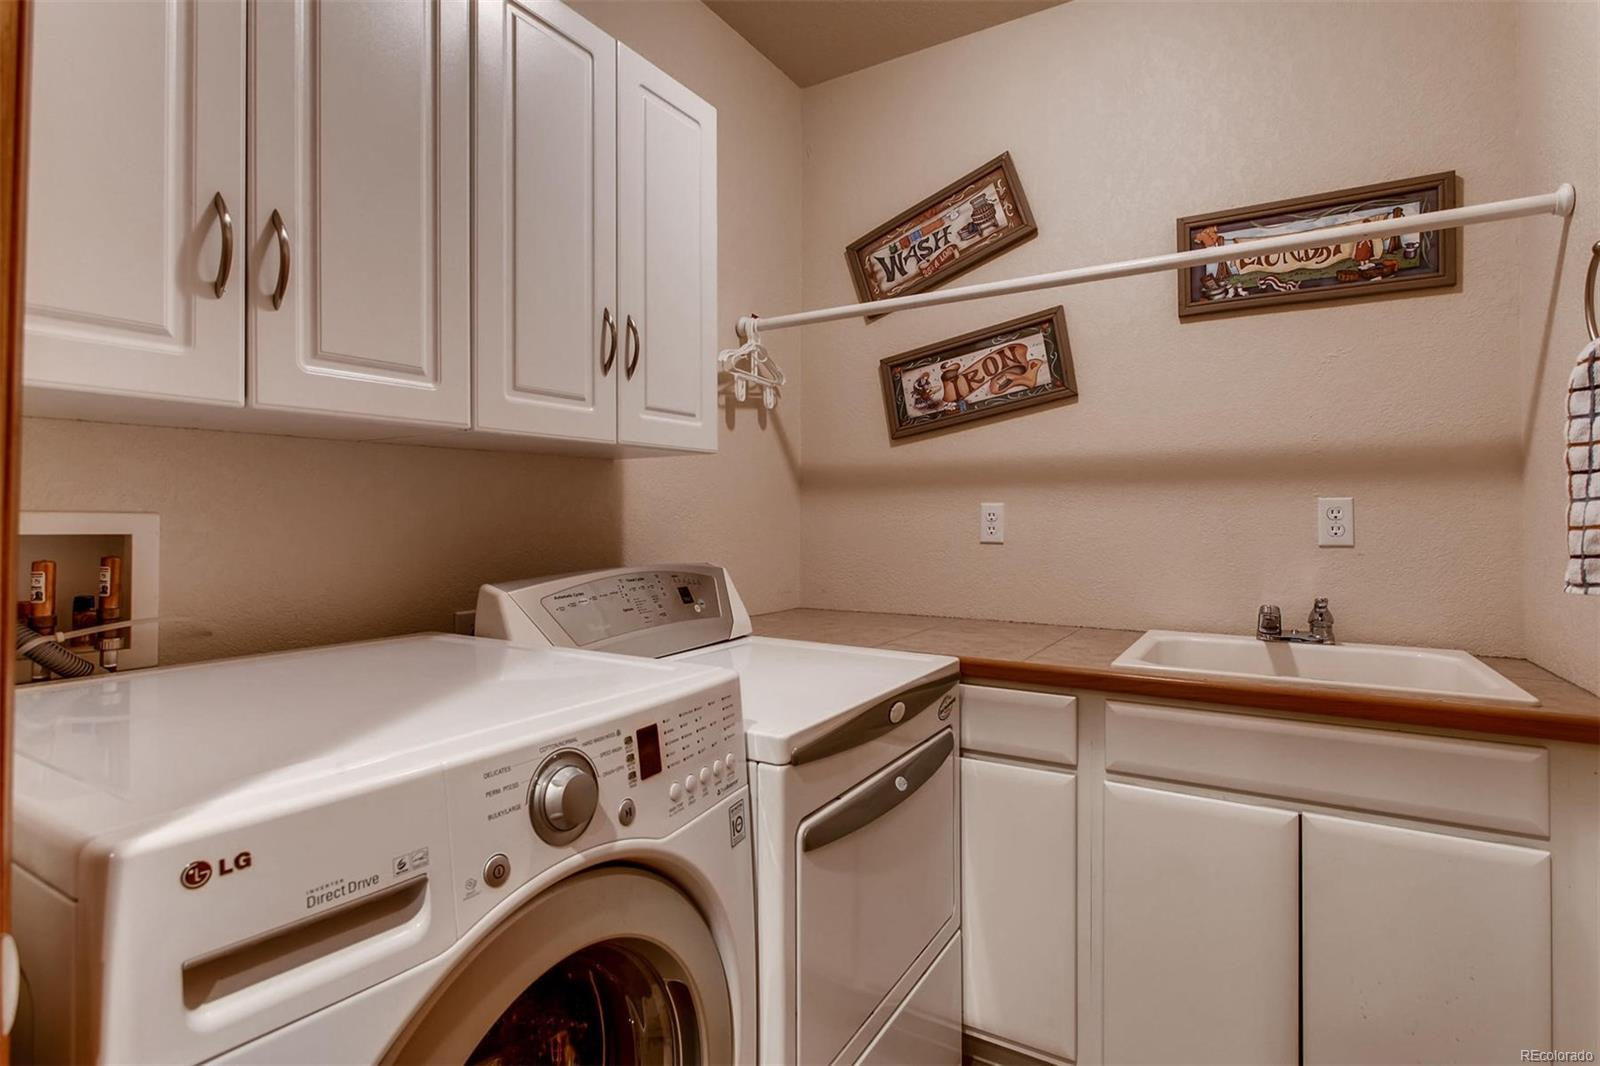 The basement laundry room is so convenient so the basement residents do not have